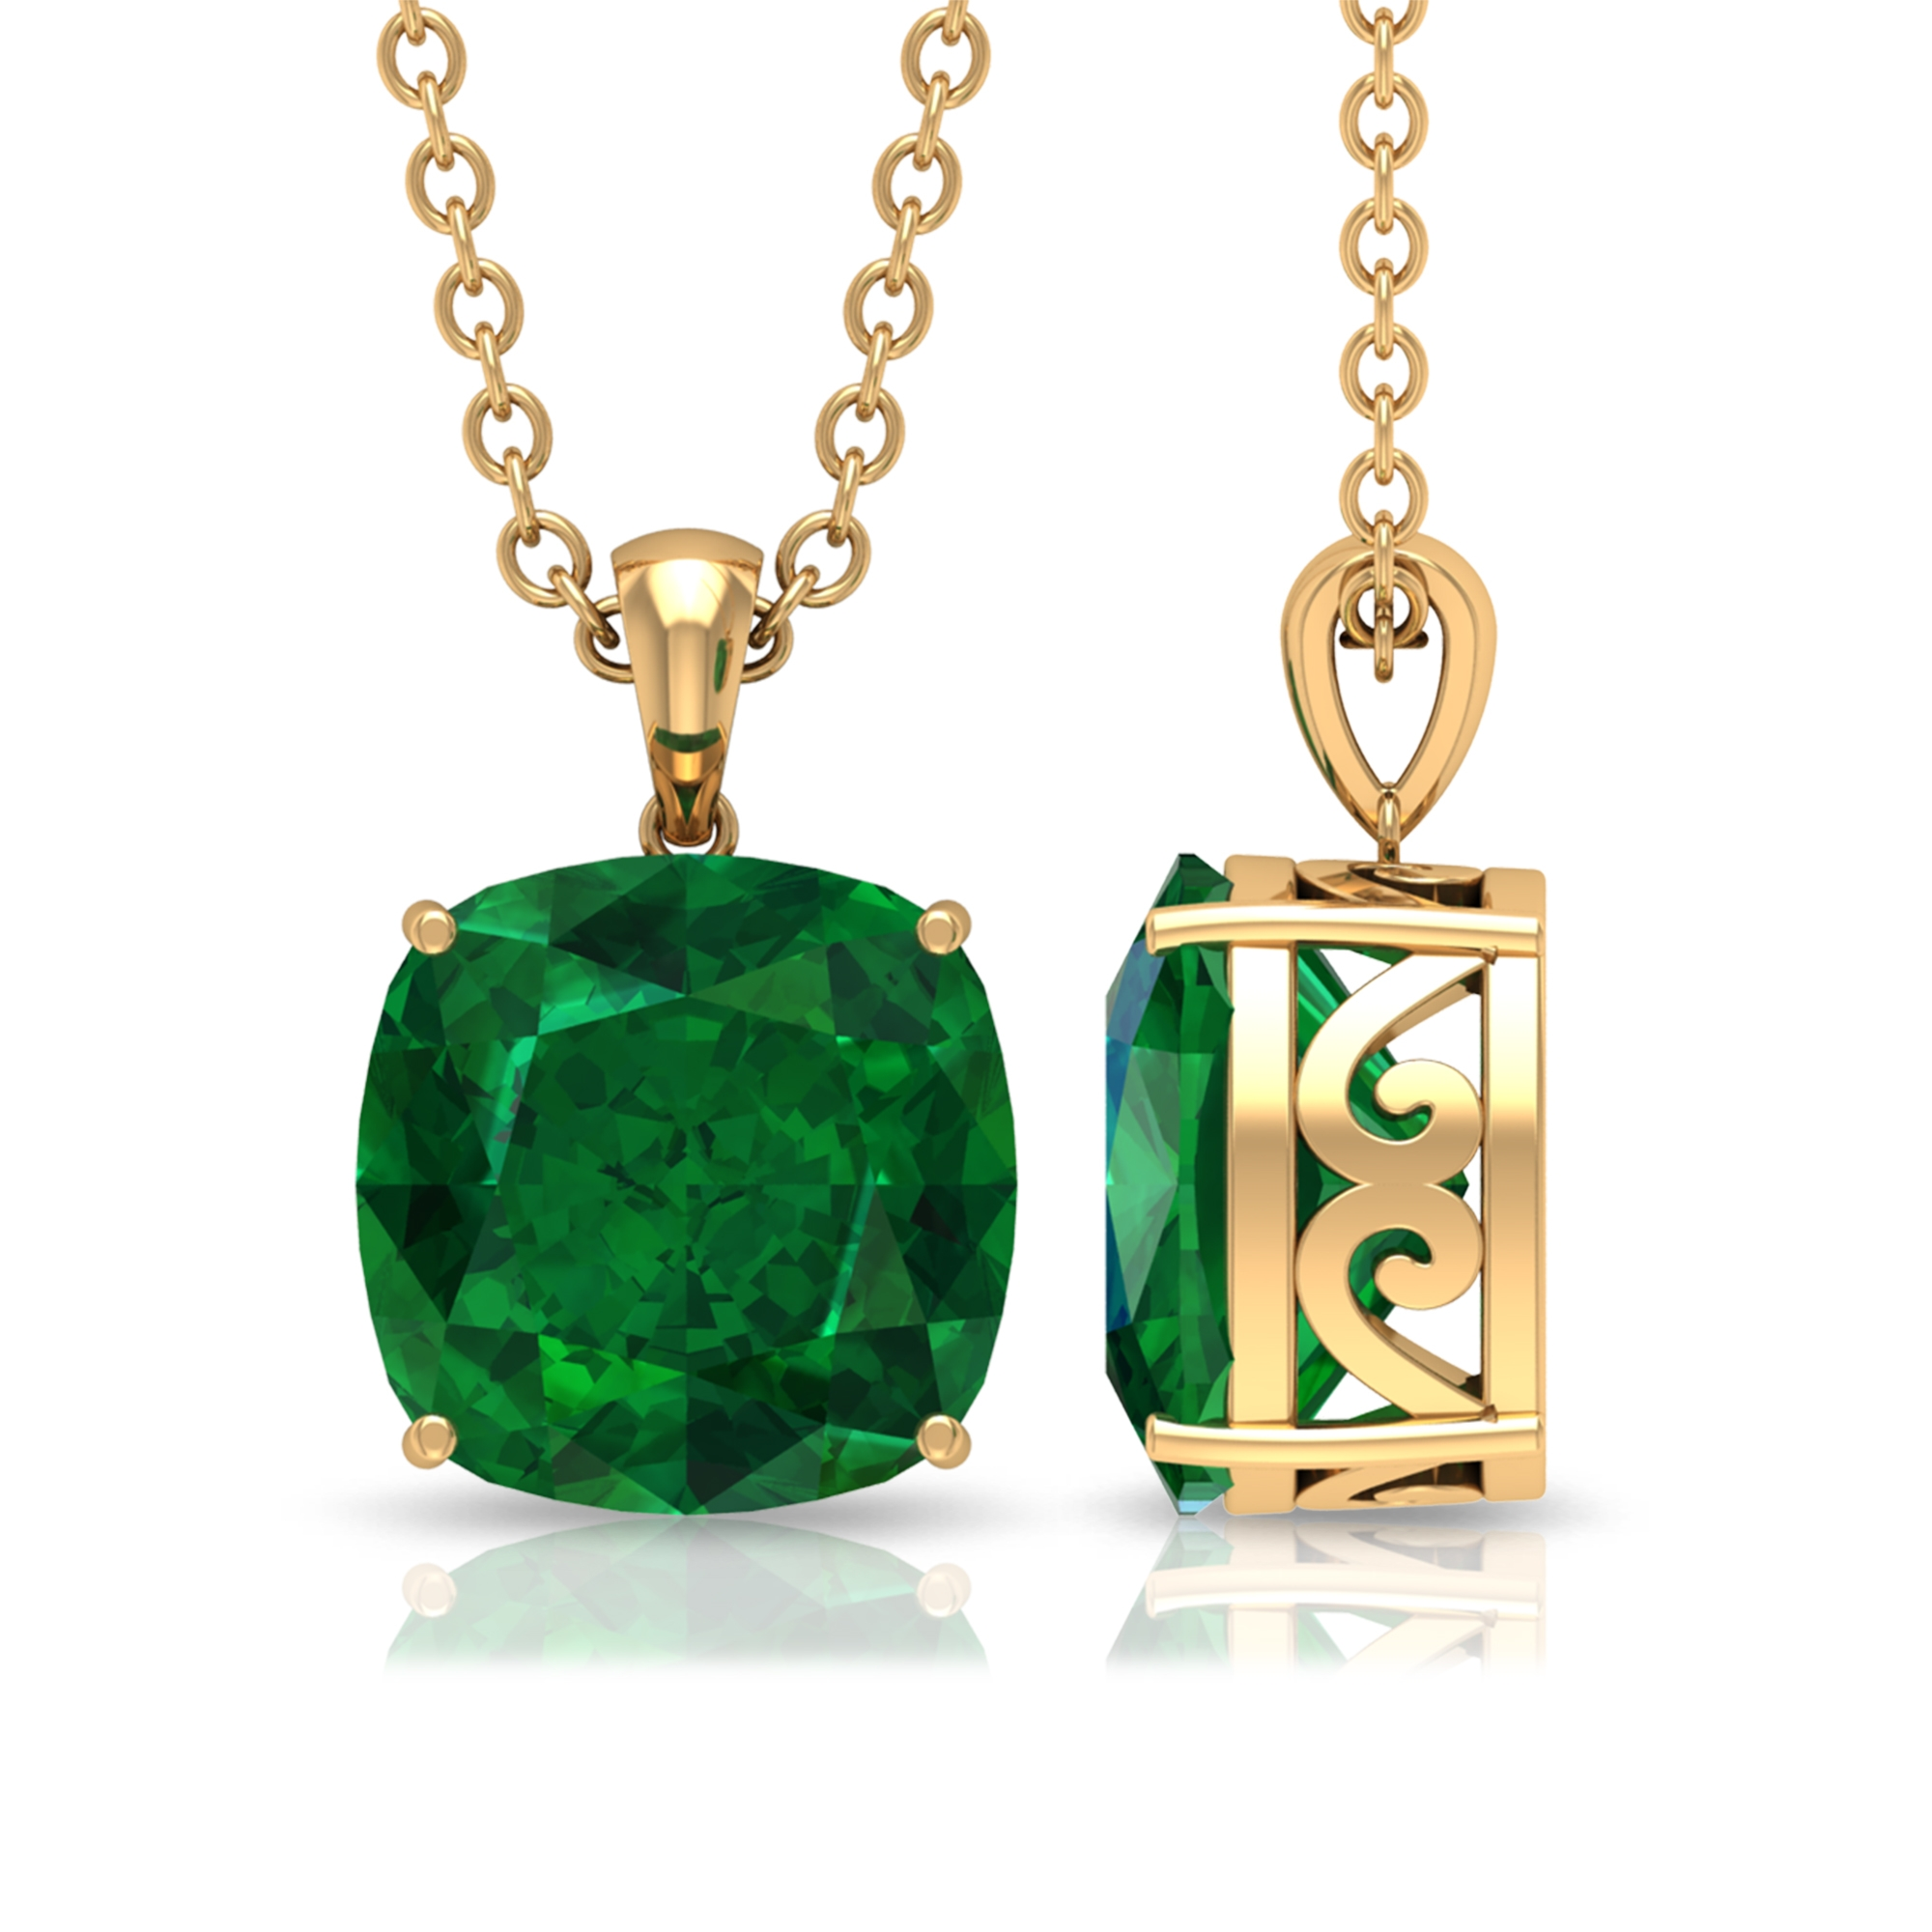 8 MM Solitaire Cushion Cut Emerald Pendant in 4 Prong Setting